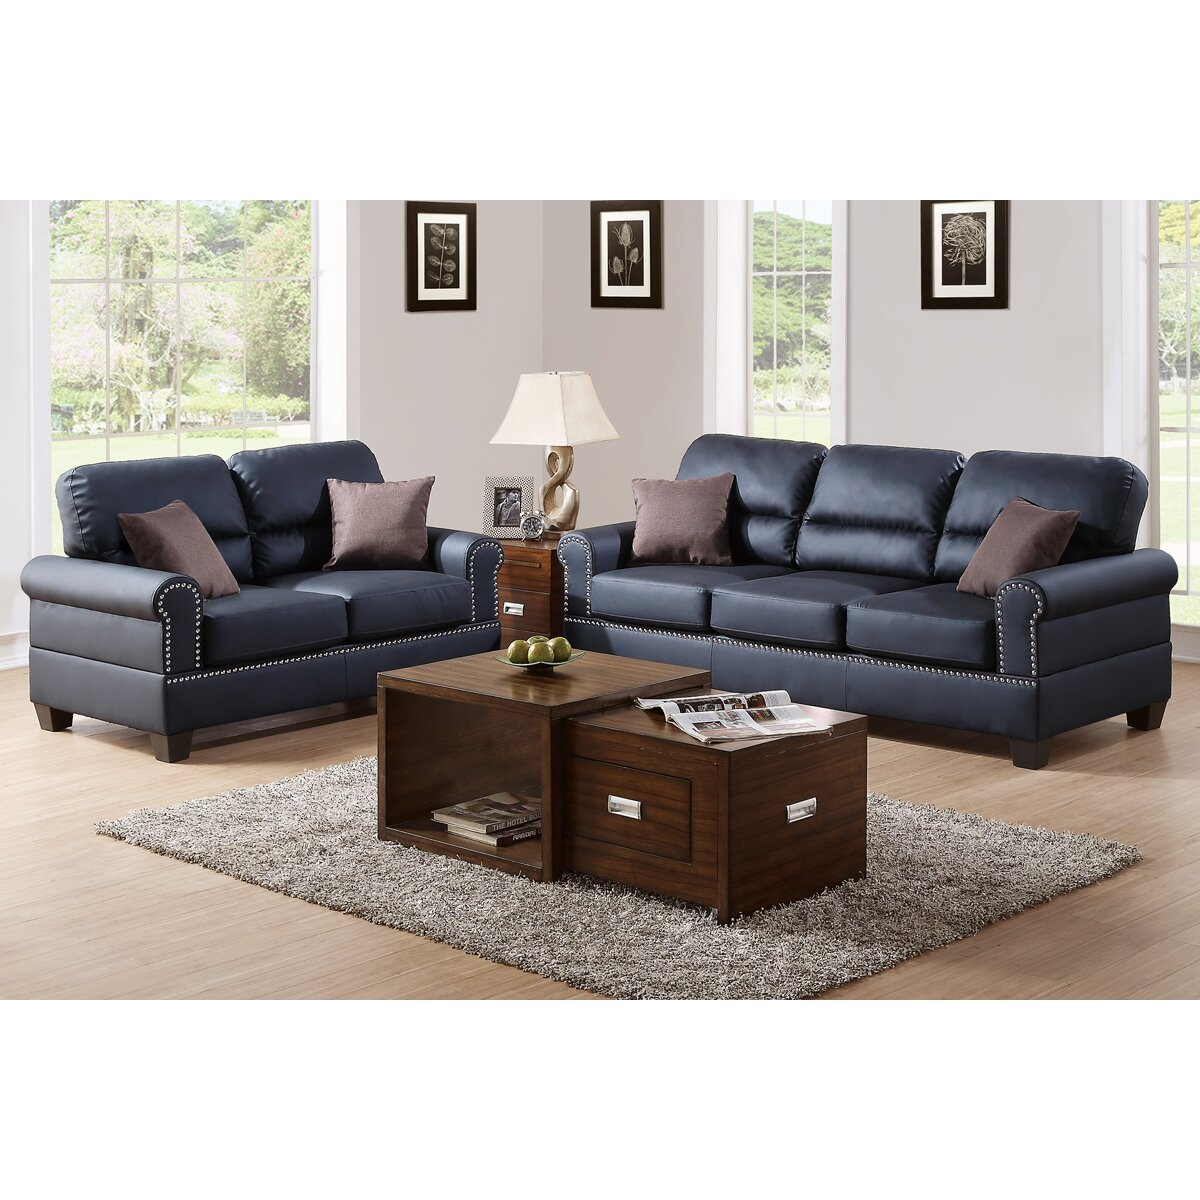 Poundex bobkona shelton 2 piece sofa and loveseat set for Drawing room furniture set